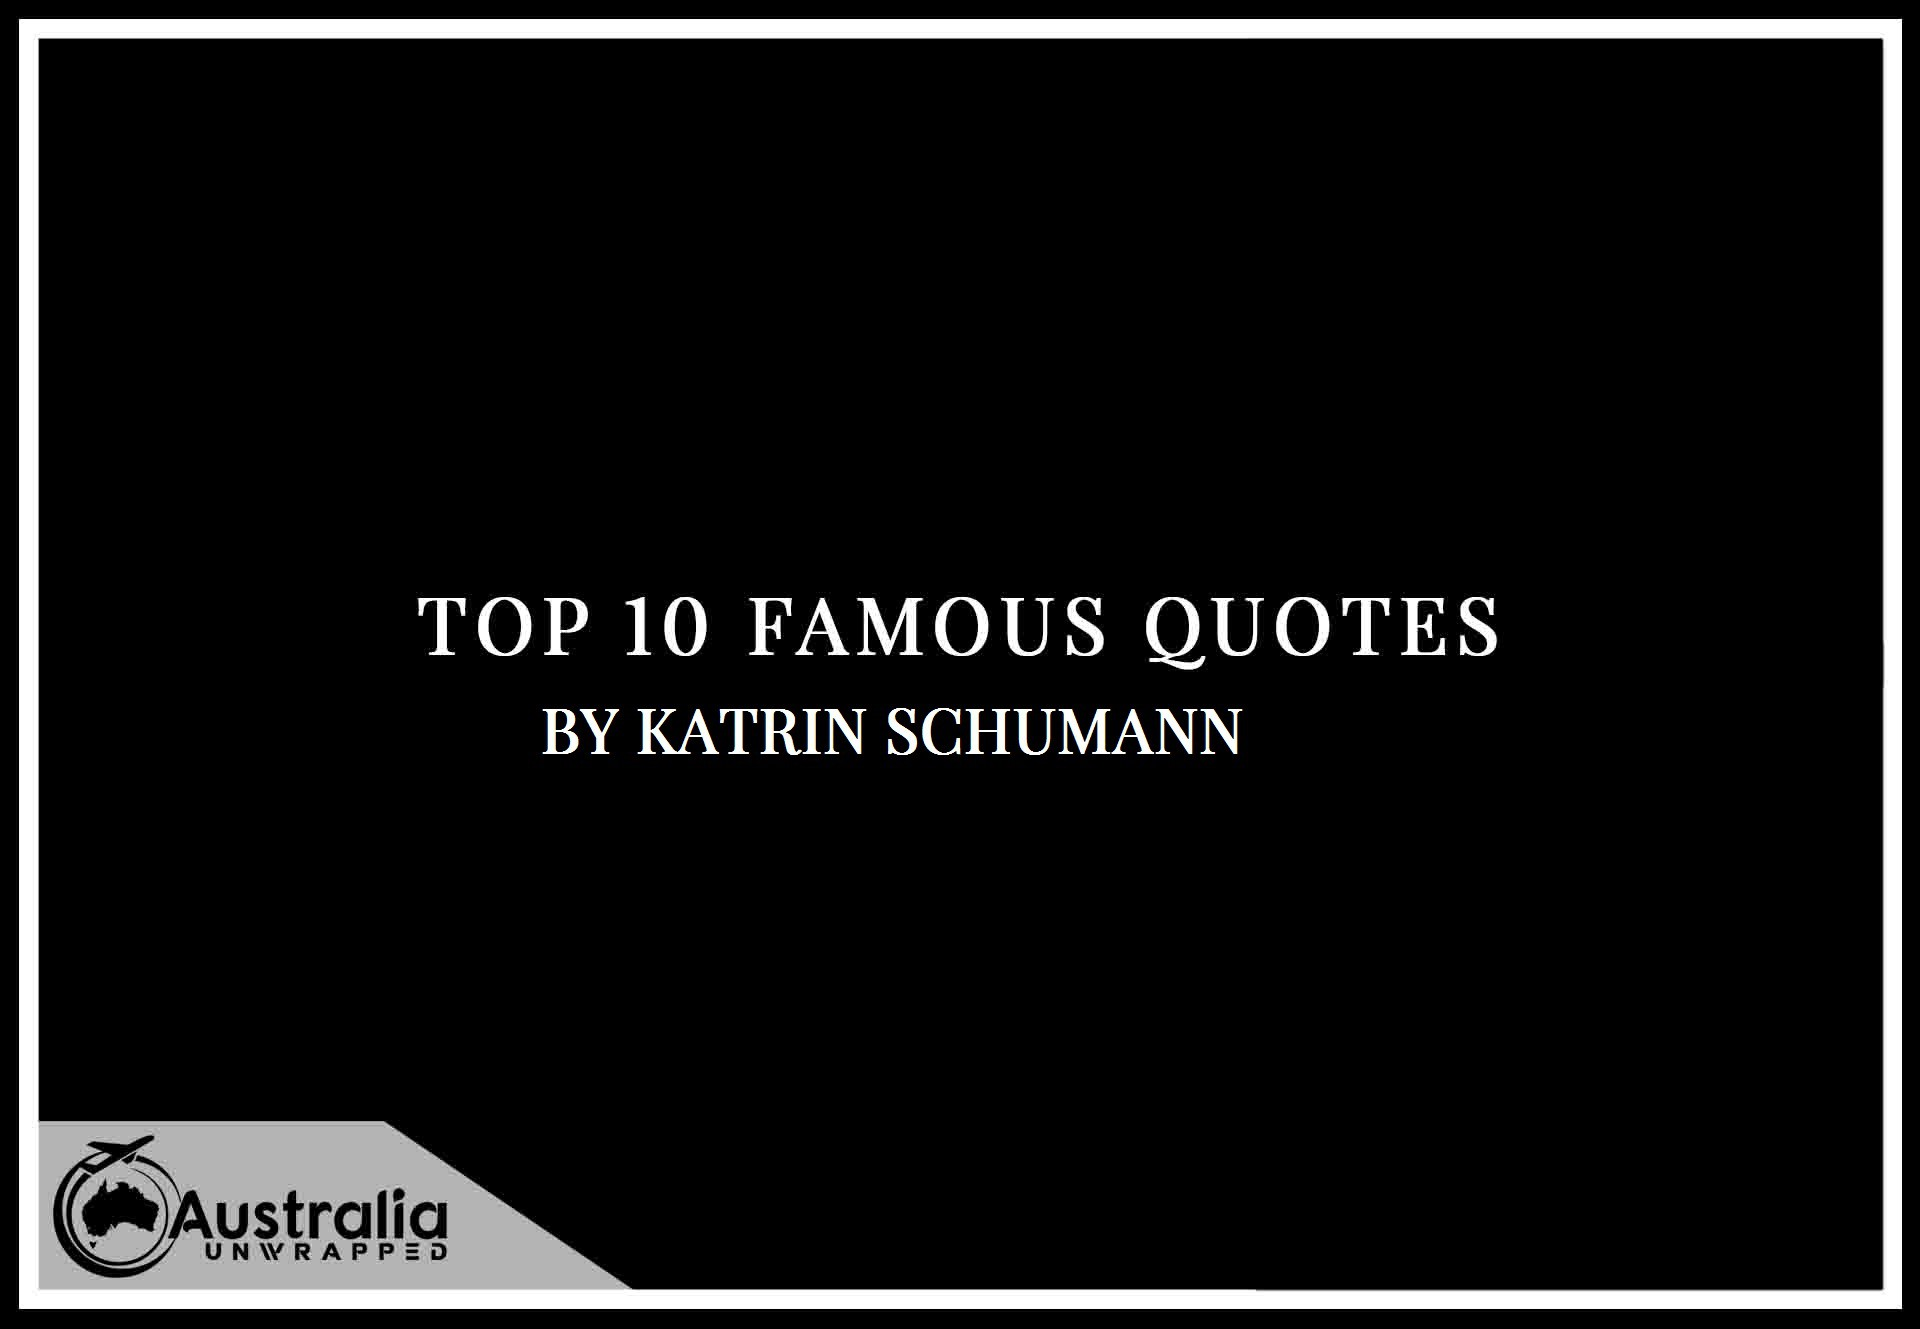 Katrin Schumann's Top 10 Popular and Famous Quotes